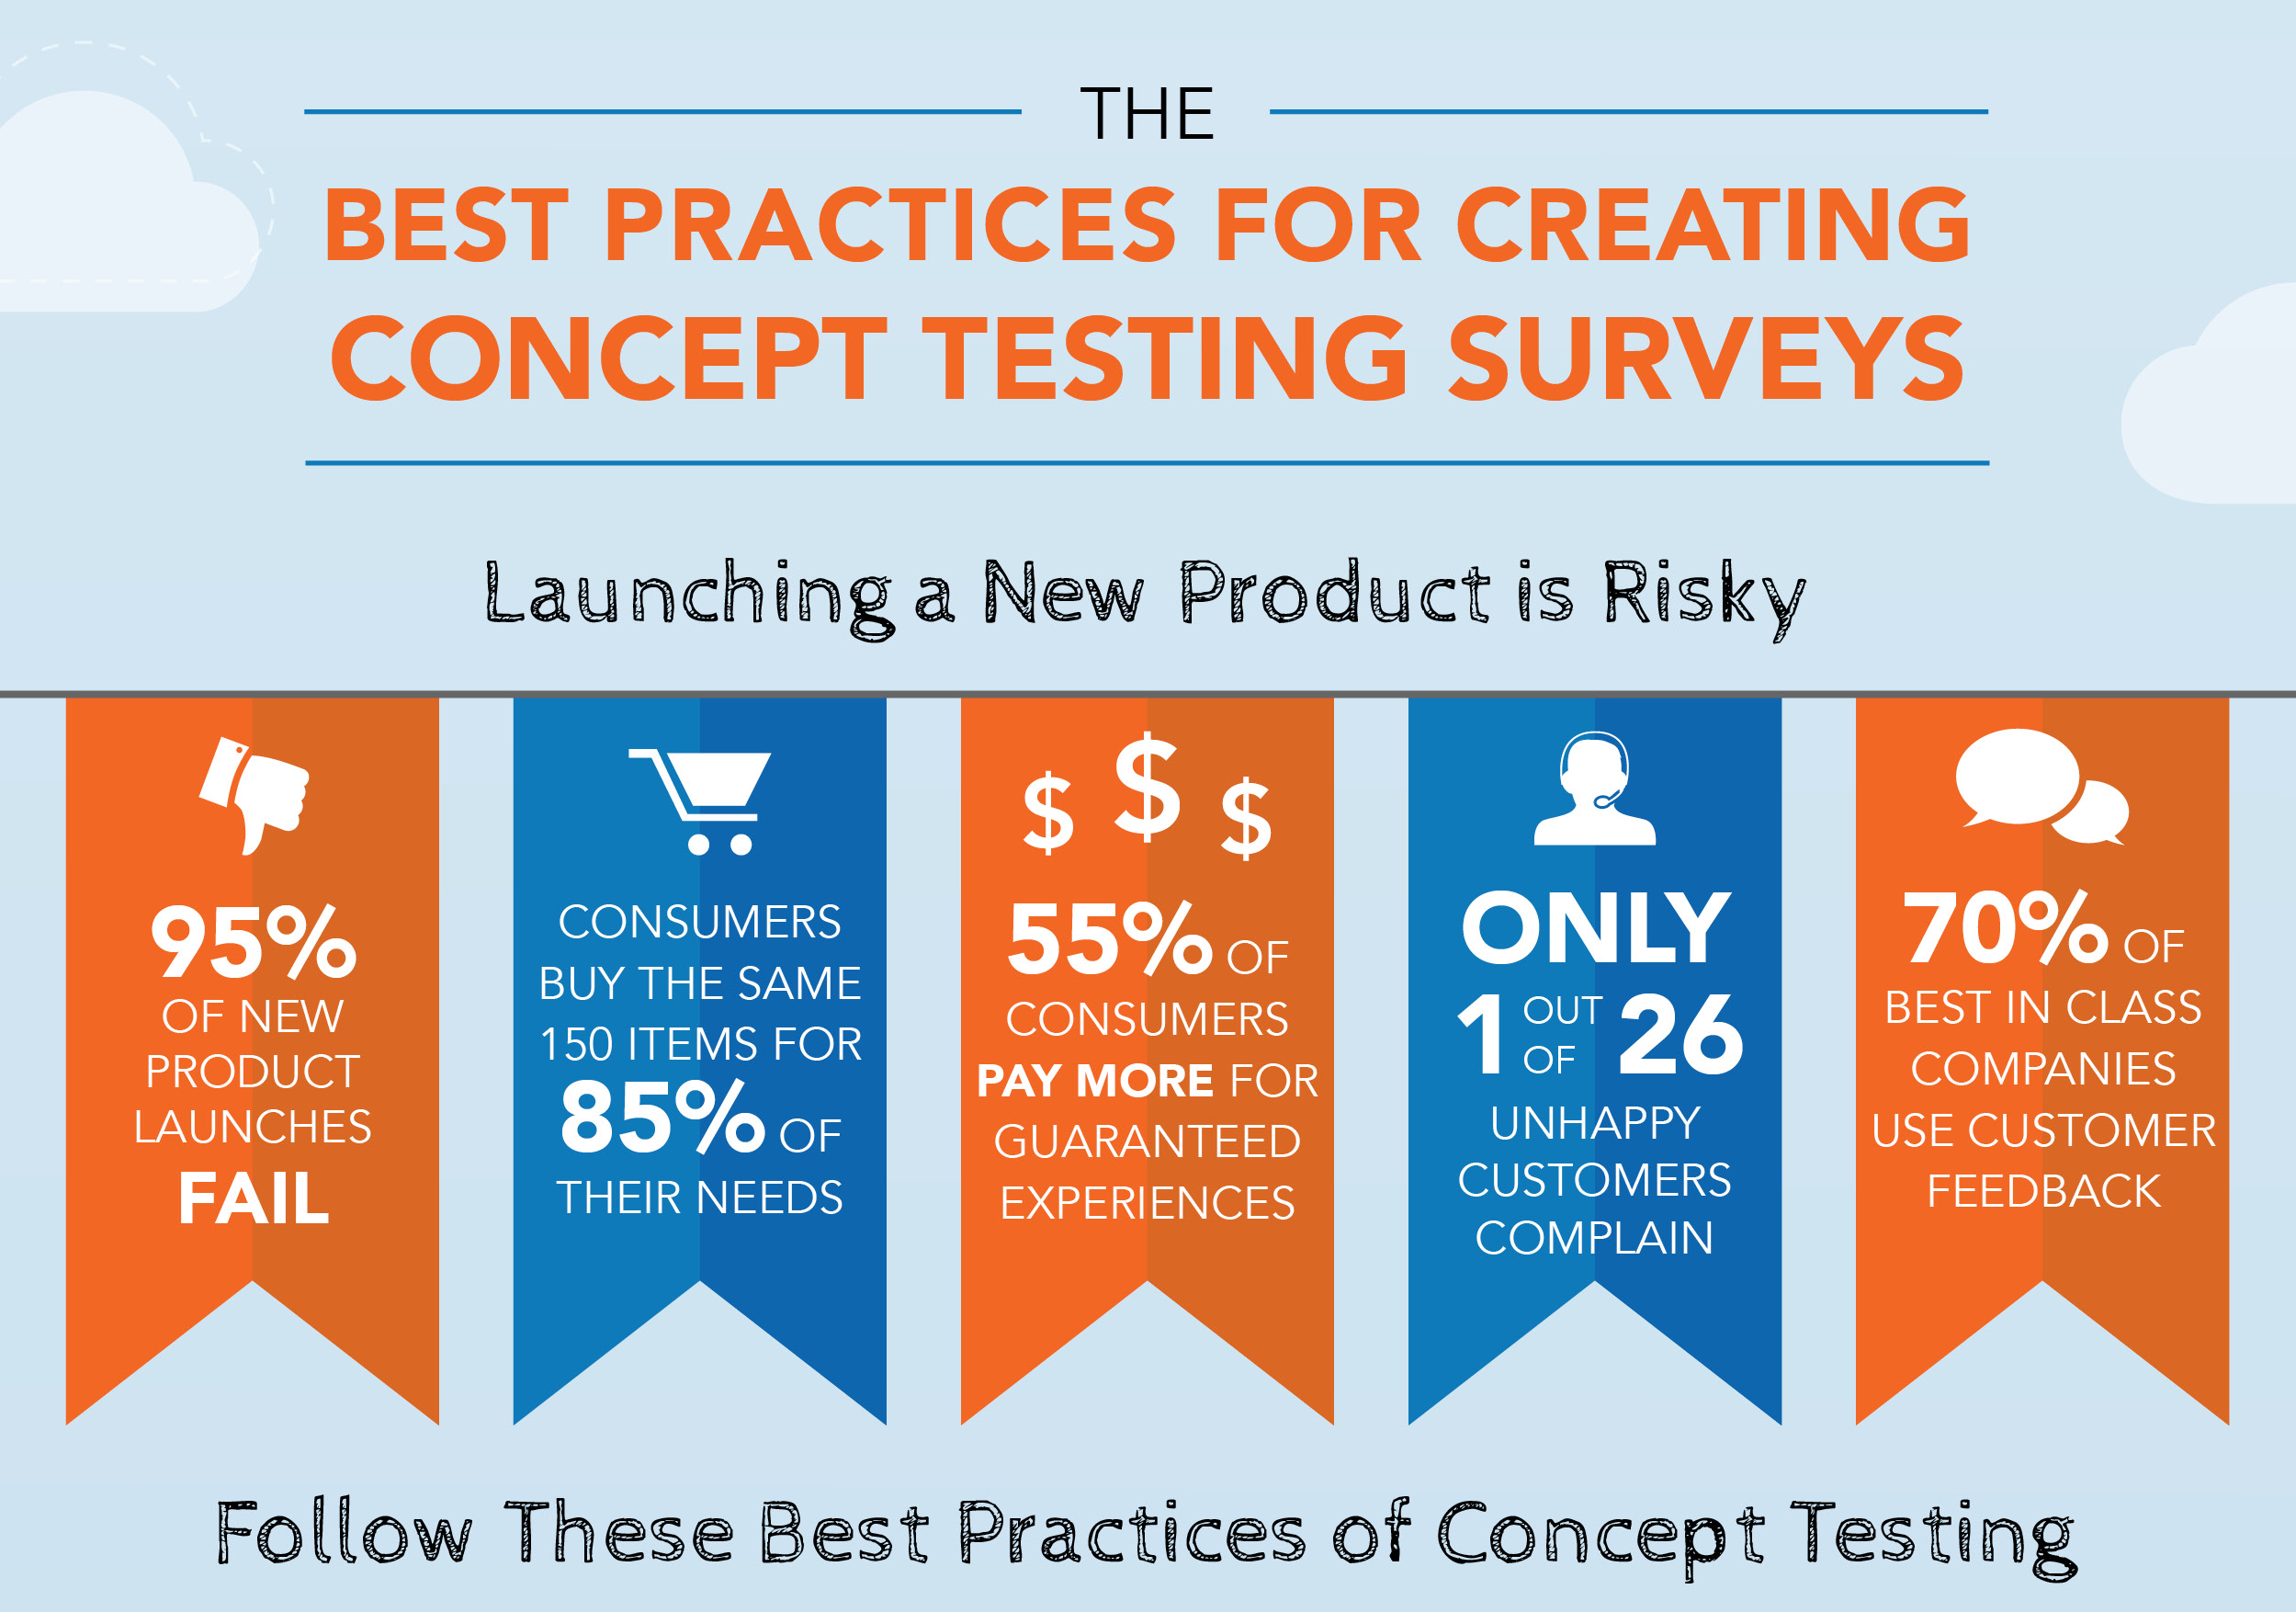 The Best Practices for Creating Concept Testing Surveys